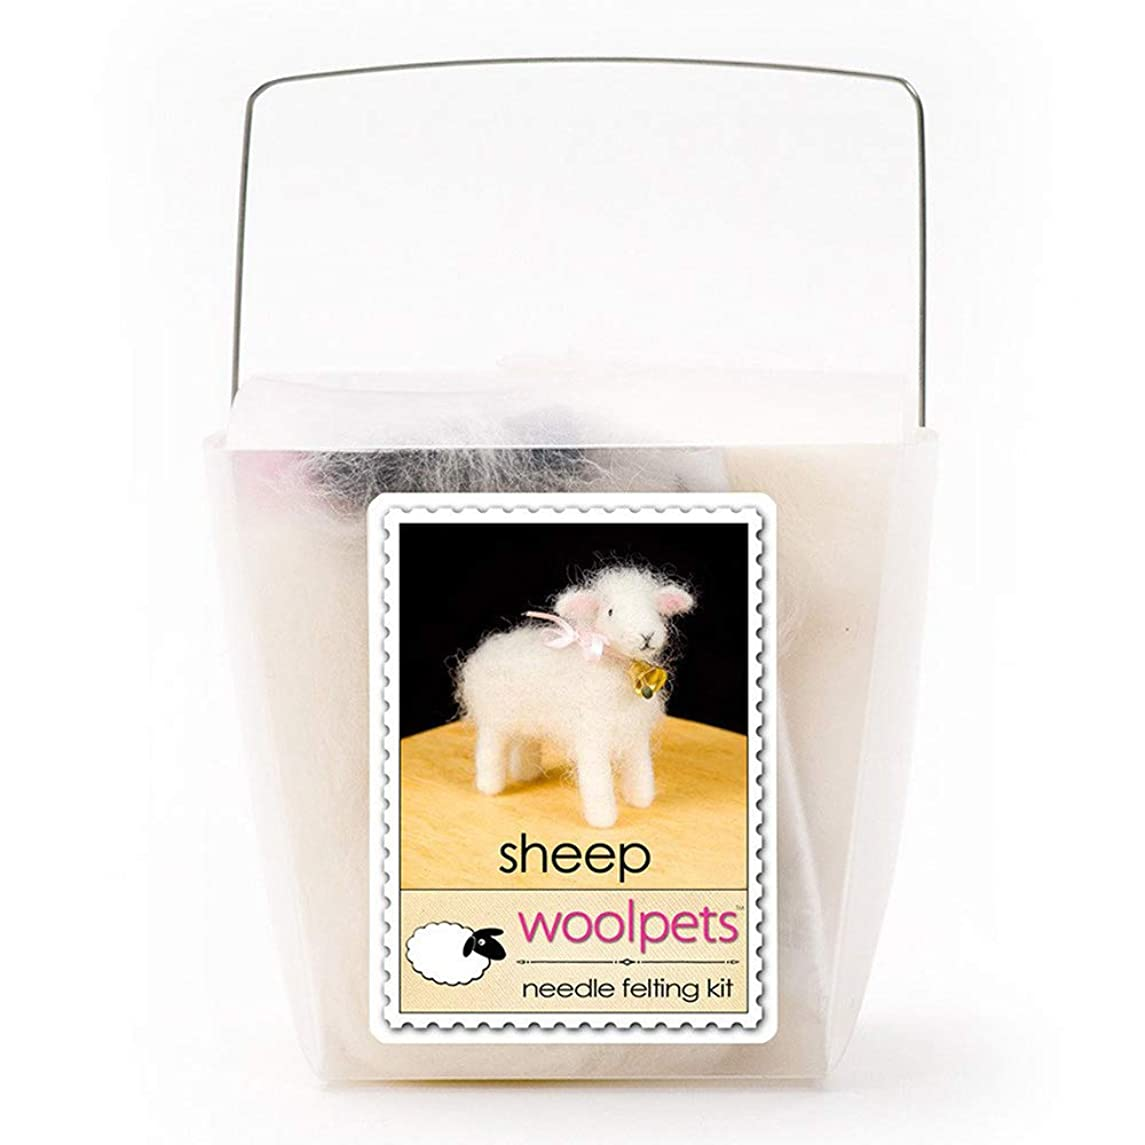 WoolPets Sheep Wool Needle Felting Craft Kit Made in The USA.